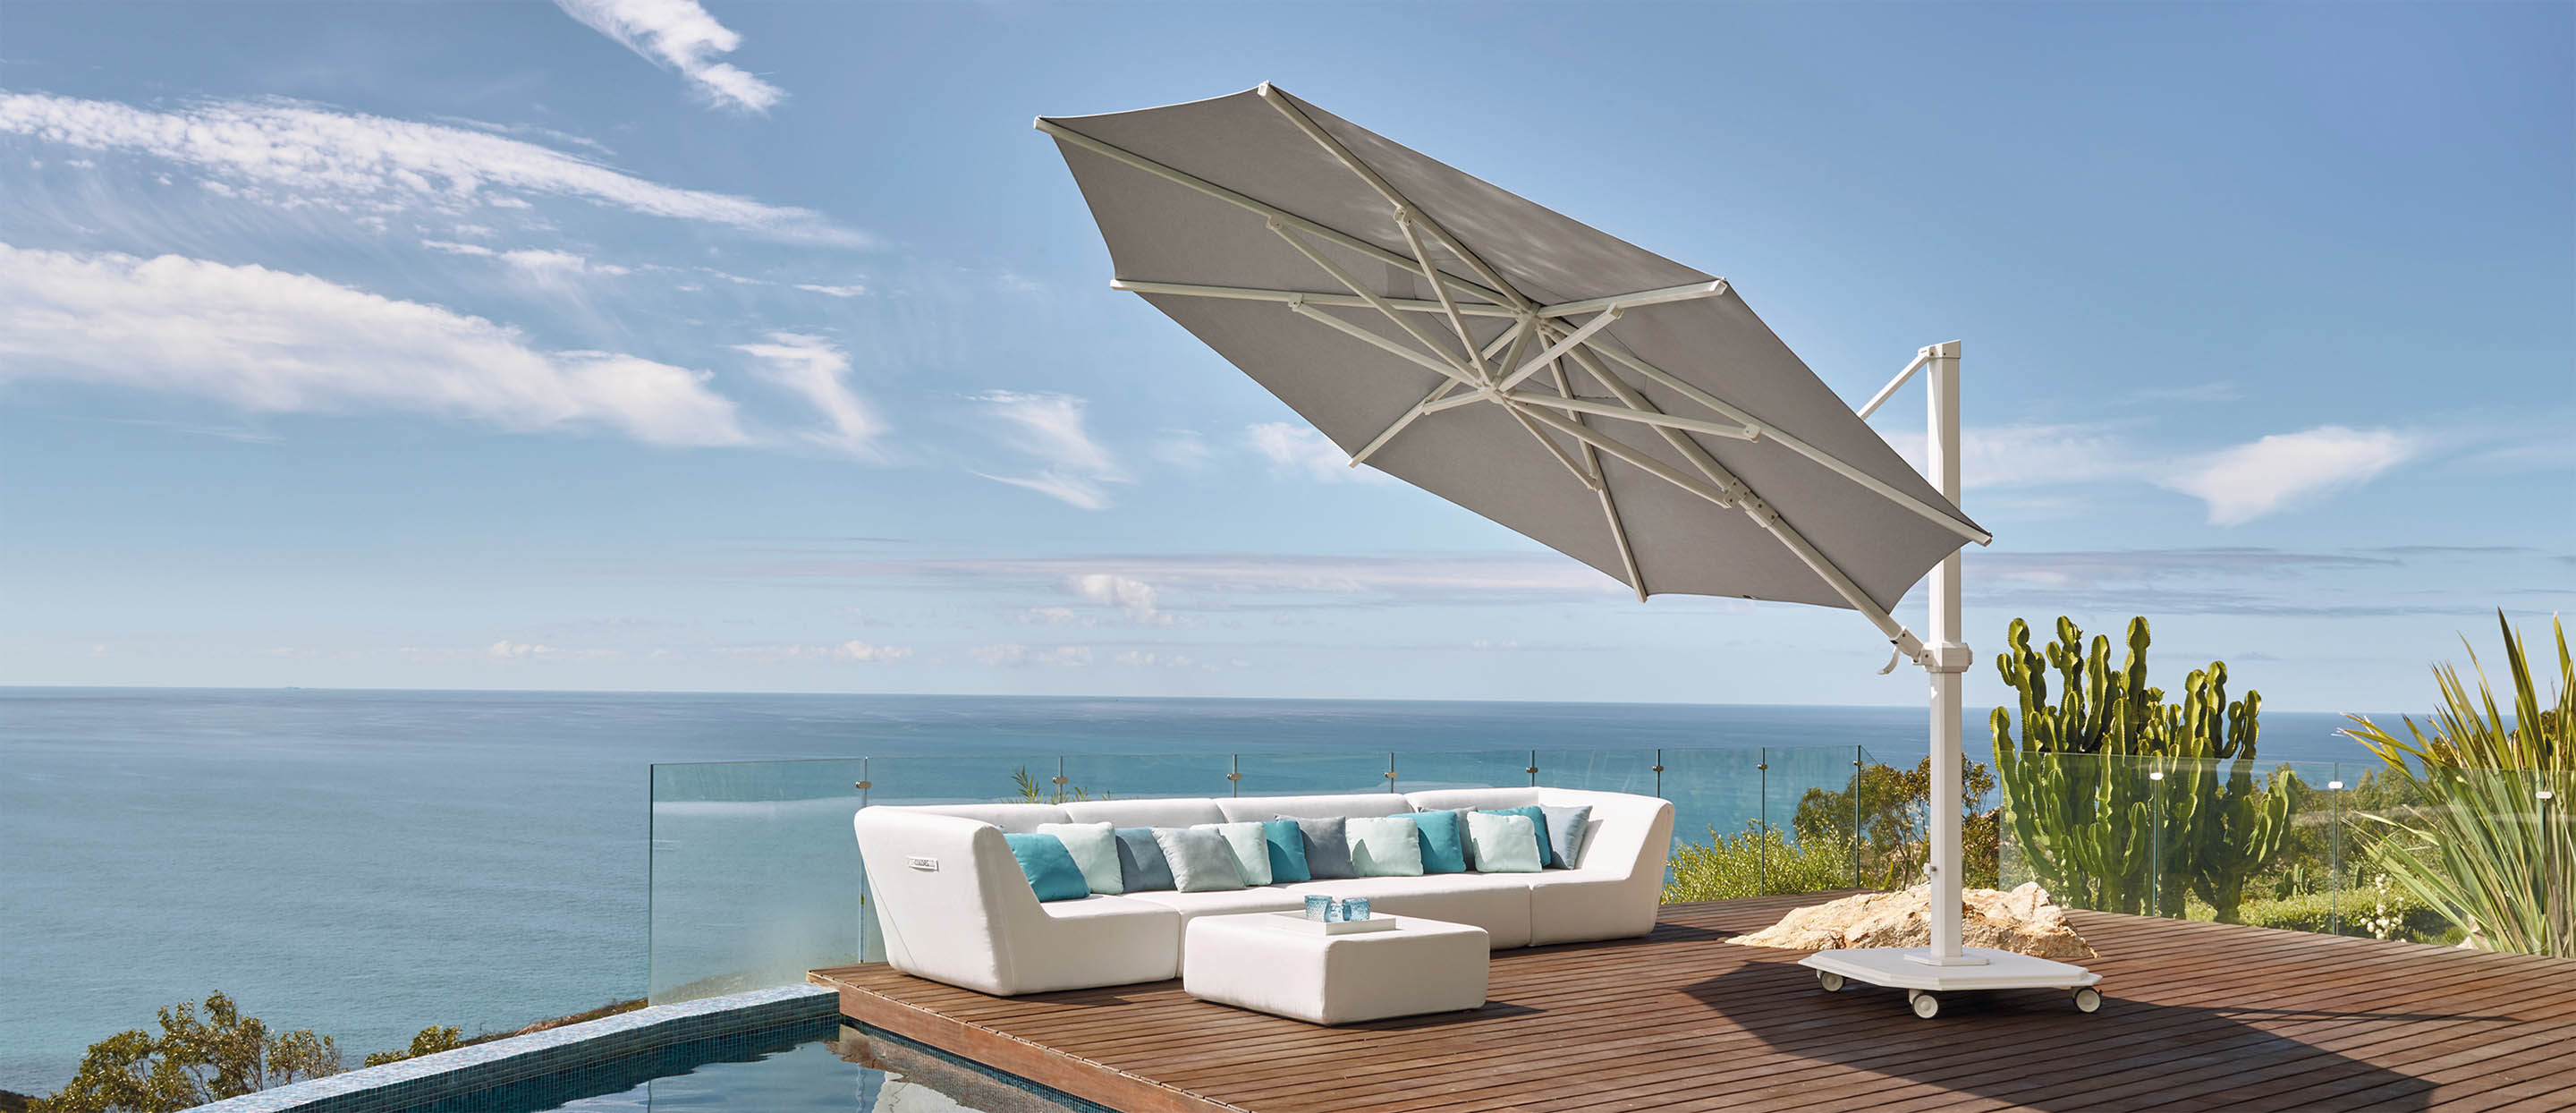 A photo of a large cantilever umbrella shading a white sectional on a patio